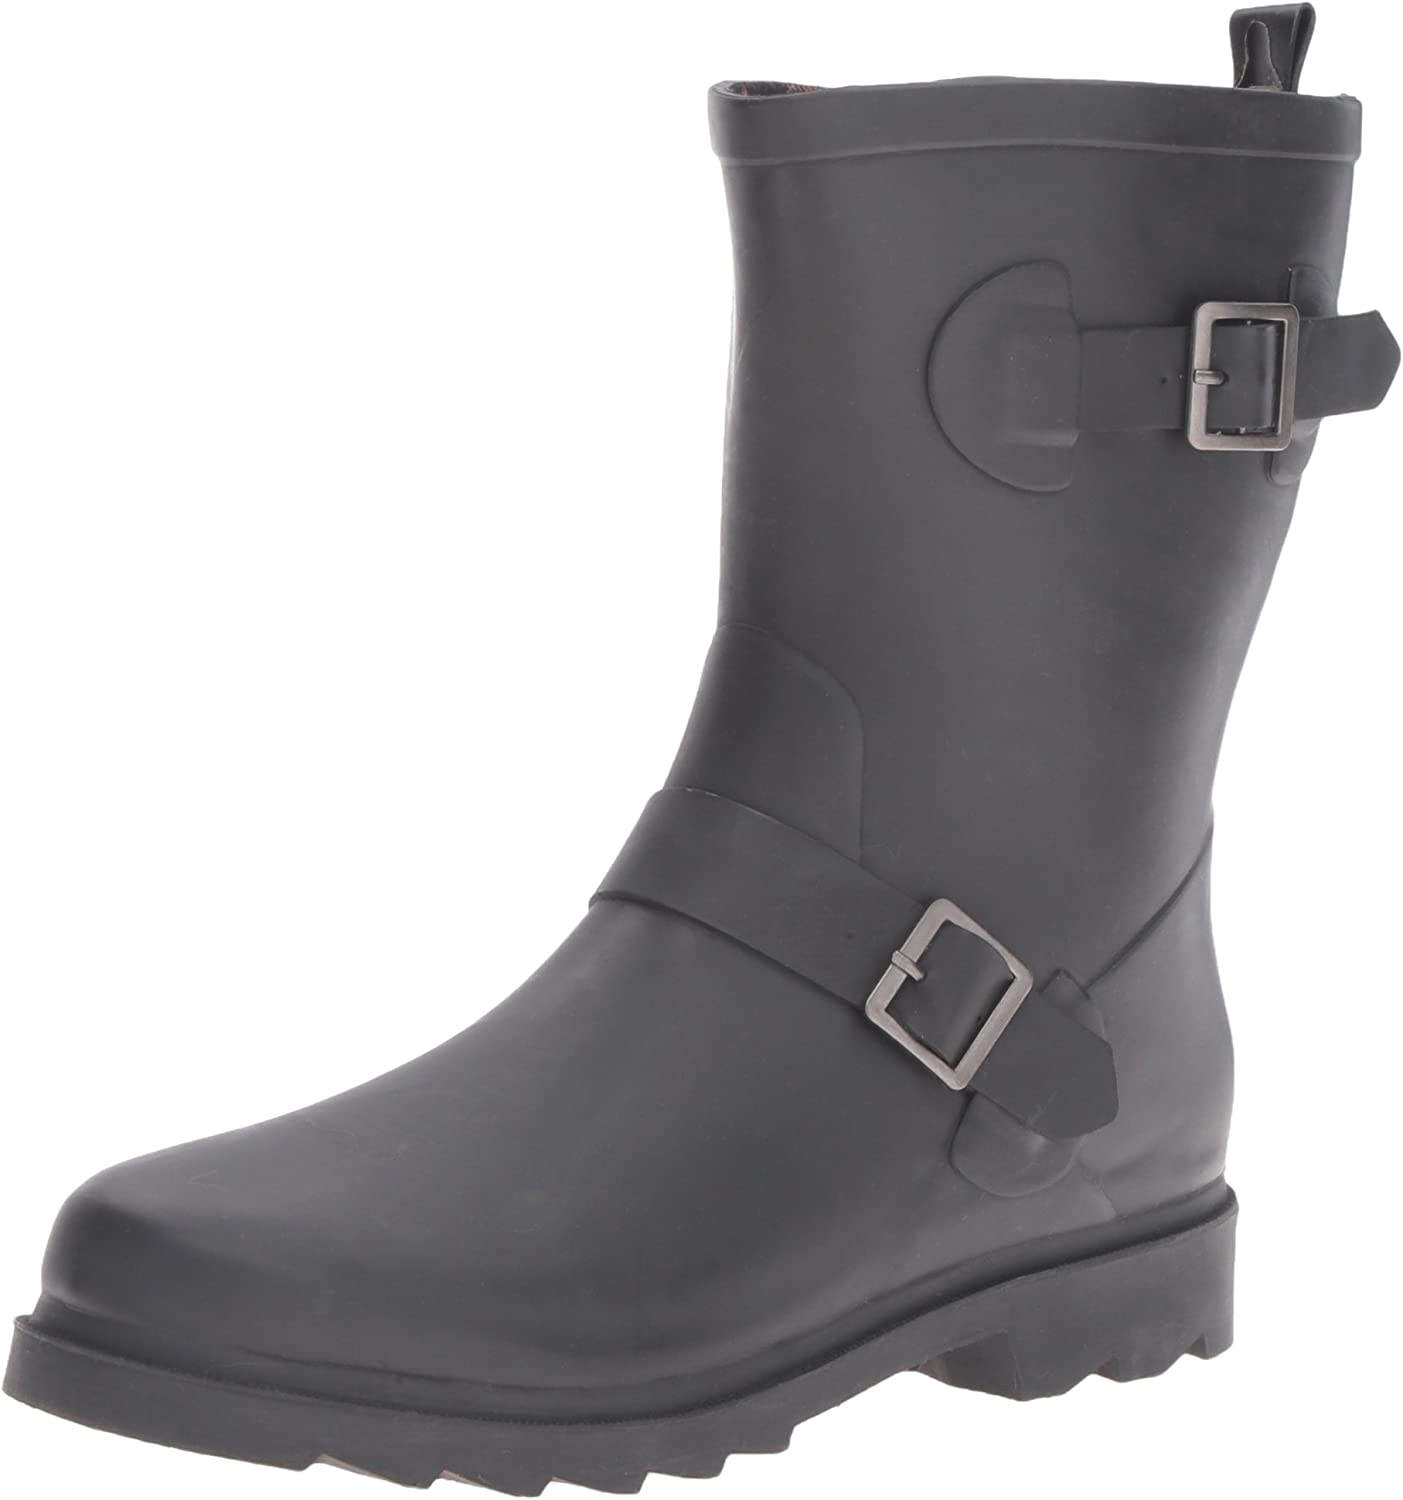 Dirty Laundry by Chinese Laundry Women's Roll Along Rain Boot